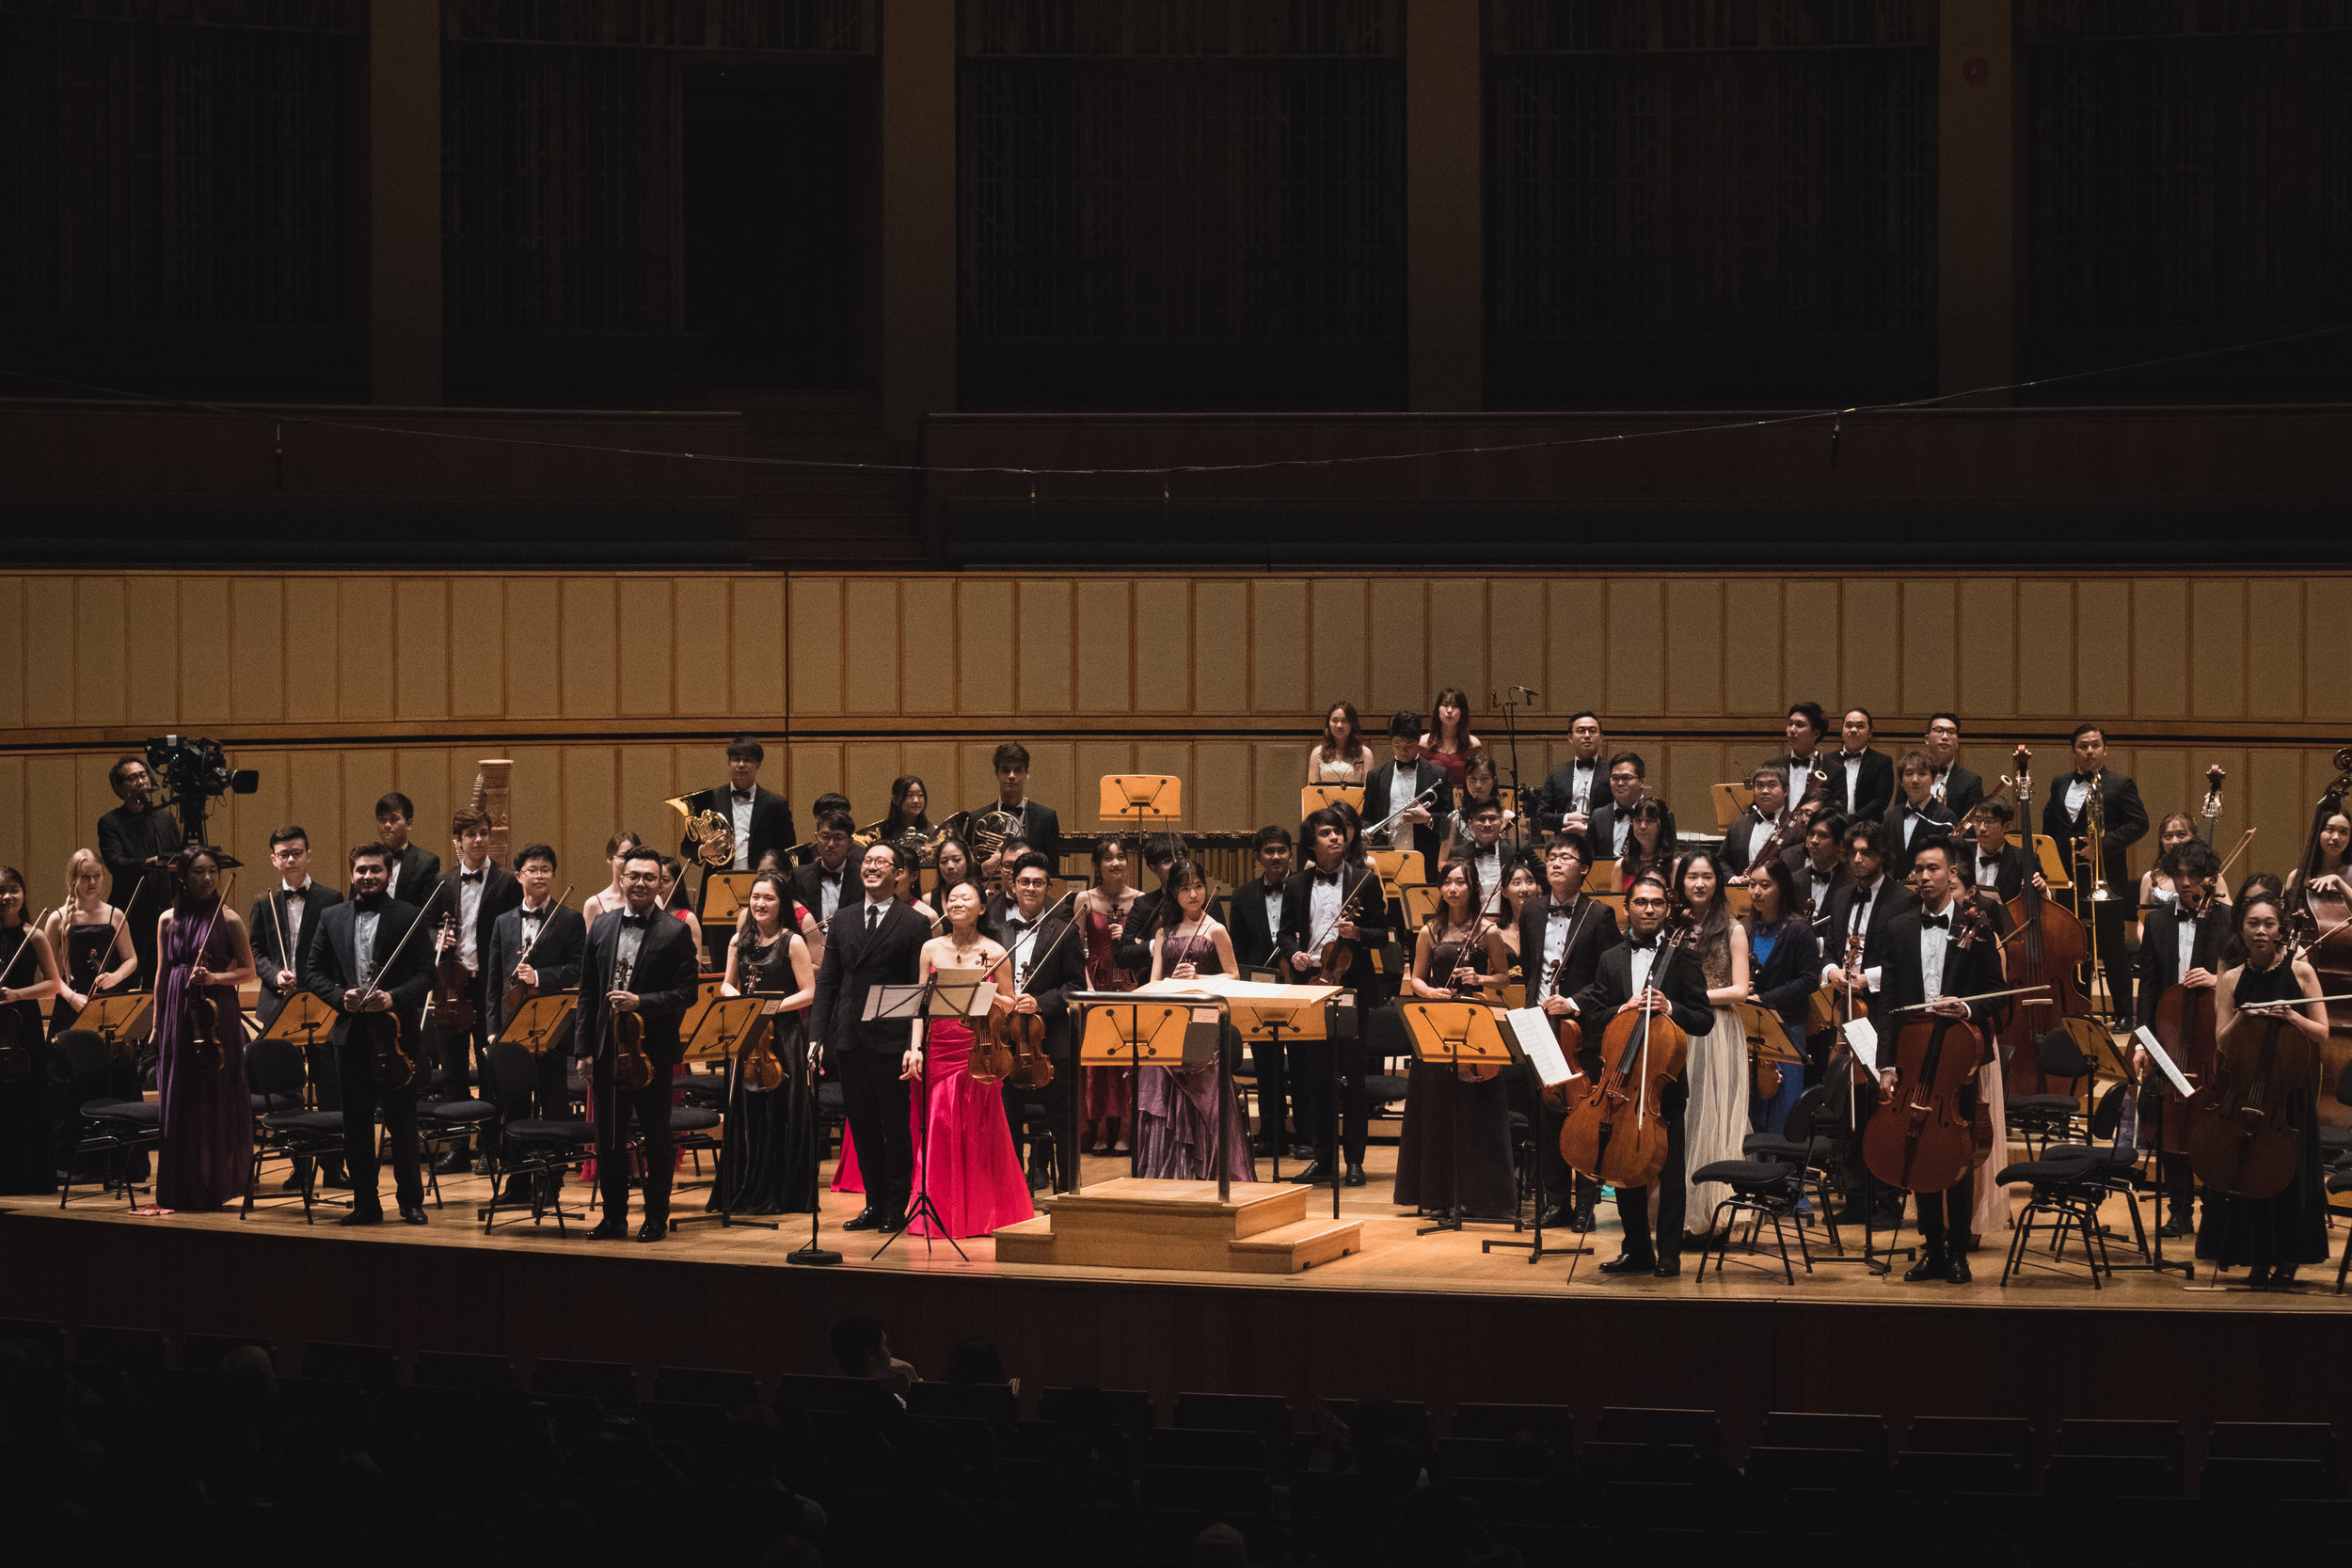 The Conservatory Orchestra, together with soloist Prof Qian Zhou, giving a bow after a performance of Walton's virtuosic Violin Concerto.